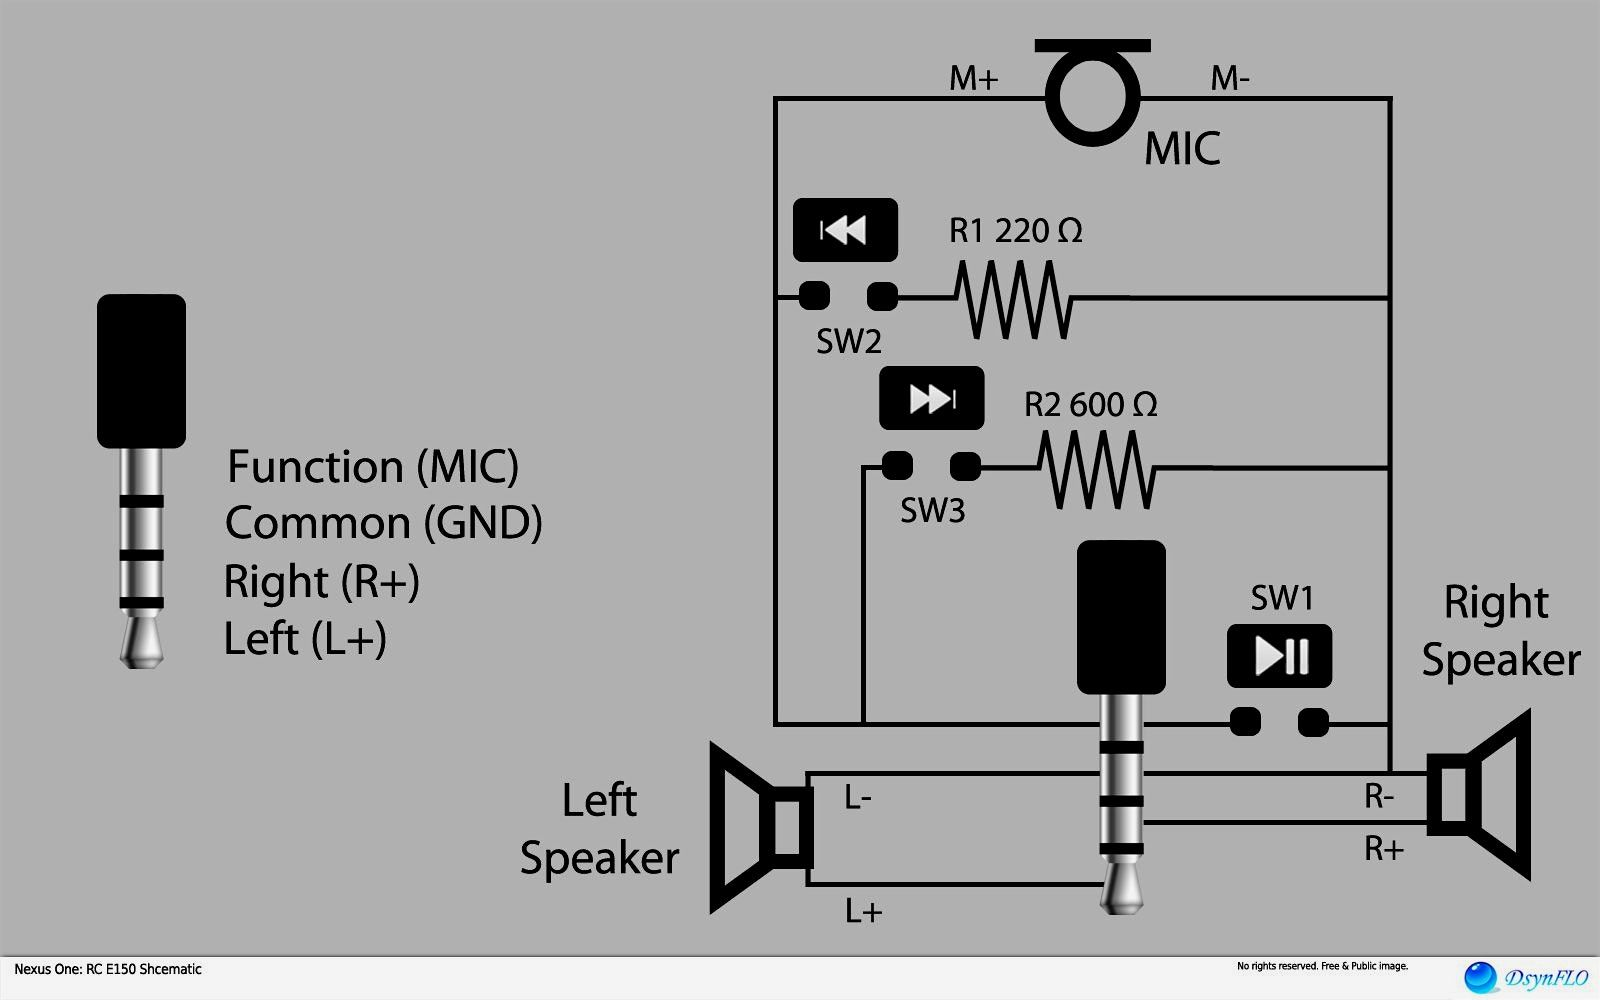 medium resolution of stereo headphone jack pinout with wiring diagram also 3 5 mm 3 5 mm audio jack schematic 3 5mm audio diagram